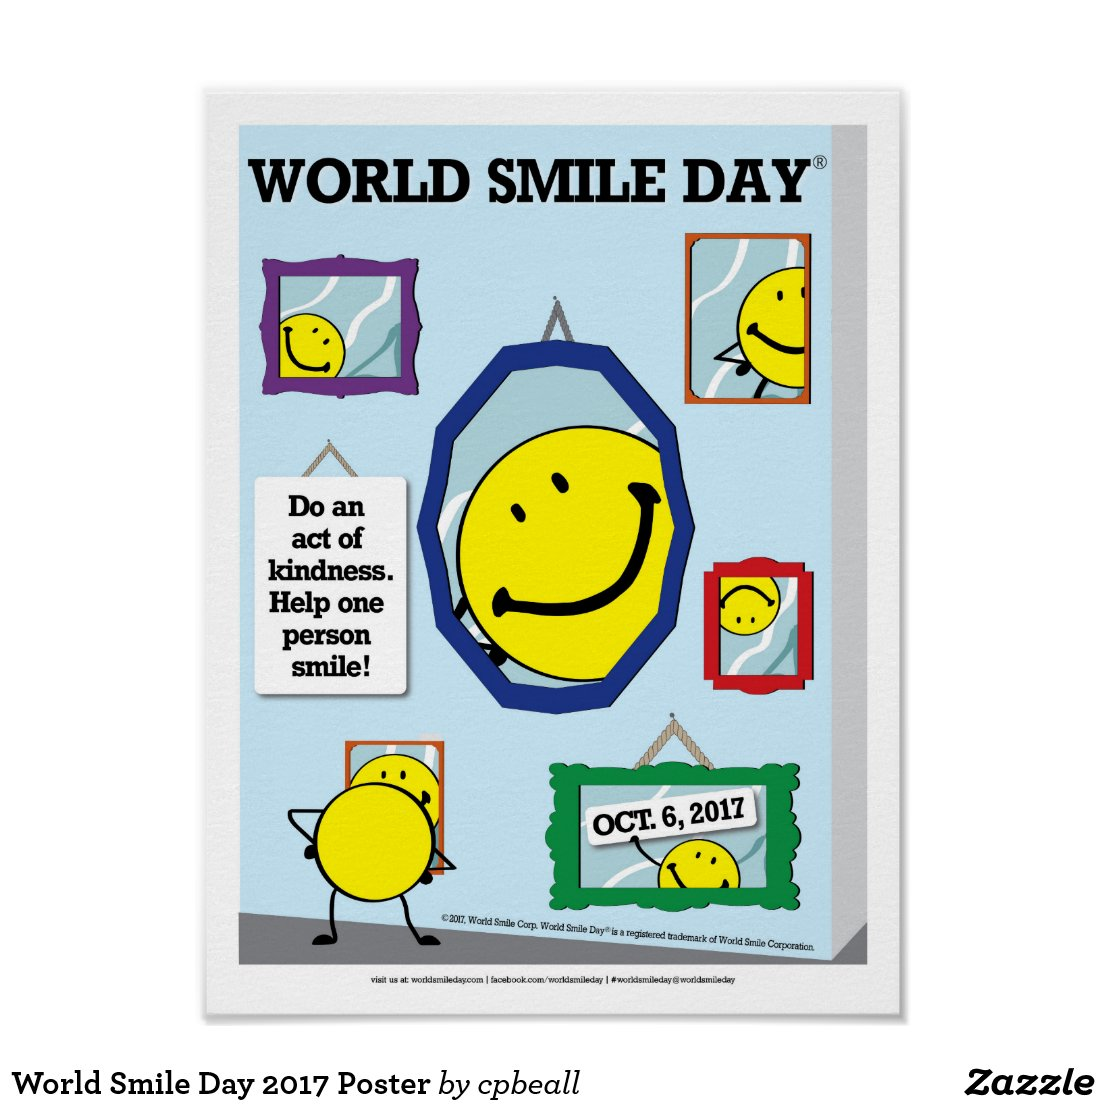 World Smile Day 2017 Poster